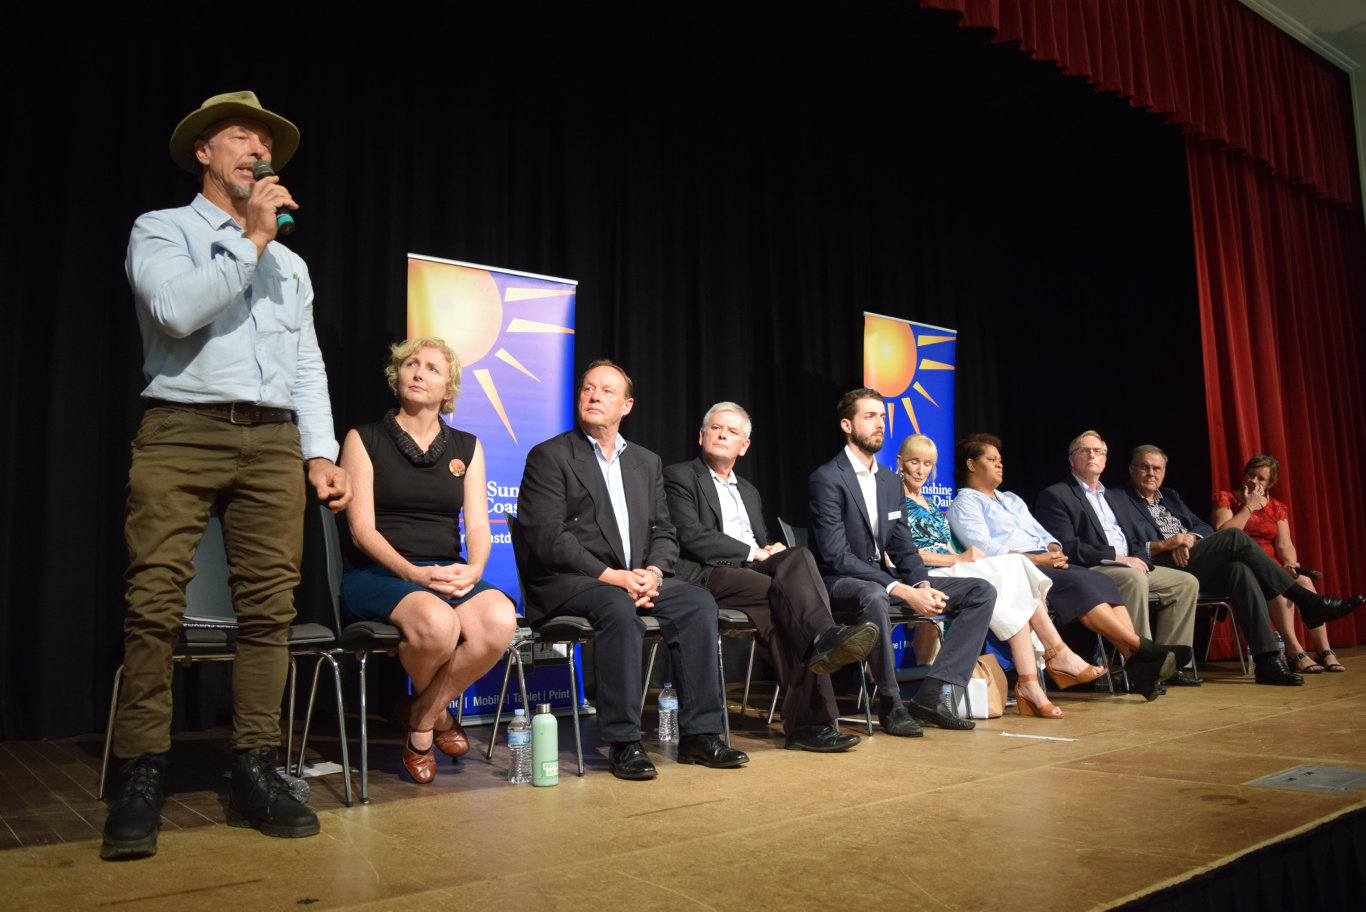 Division 5 candidate Greg Cutlack speaks at the Sunshine Coast Daily's election forum in Maleny.